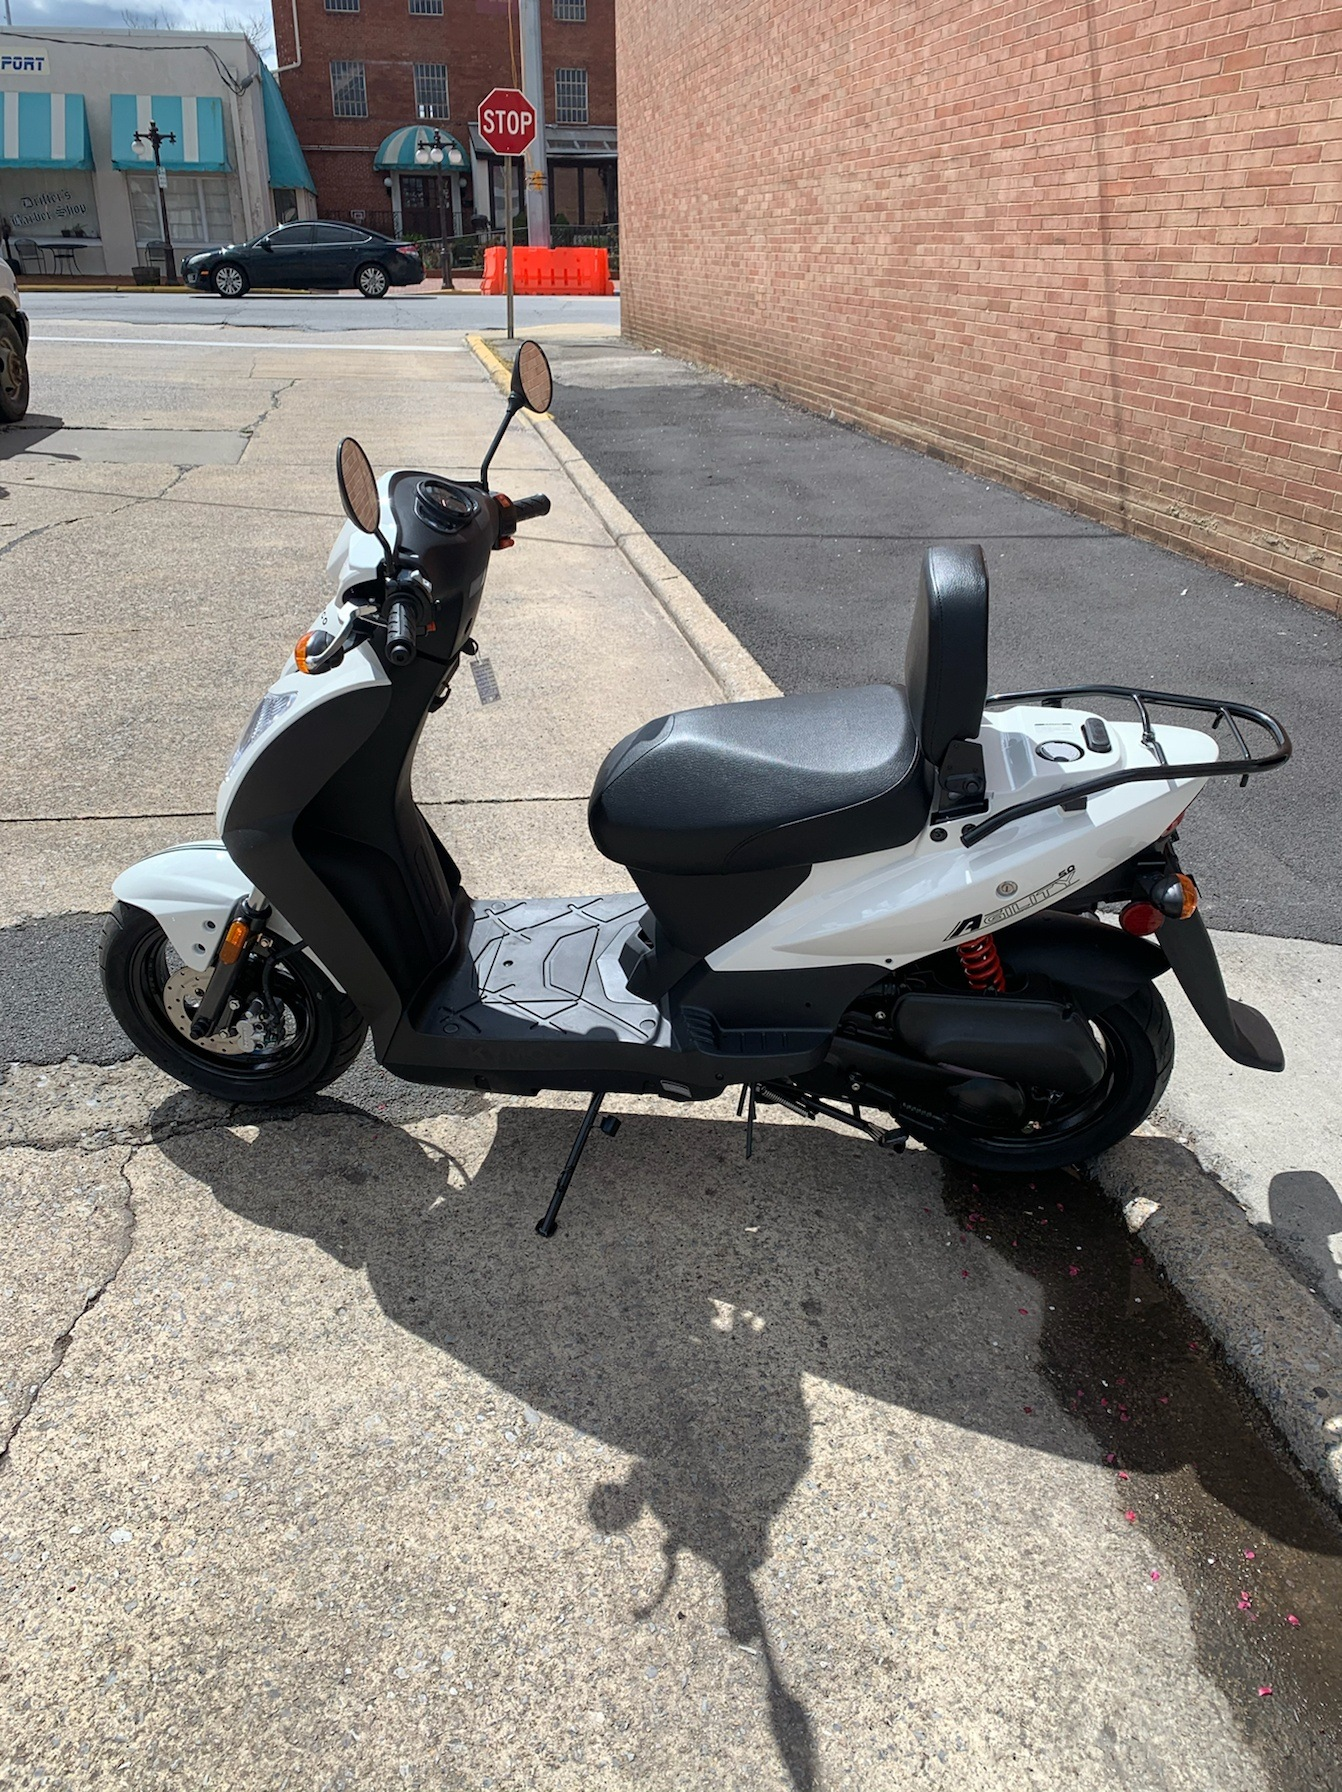 2020 Kymco AGILITY 50 in Kingsport, Tennessee - Photo 4